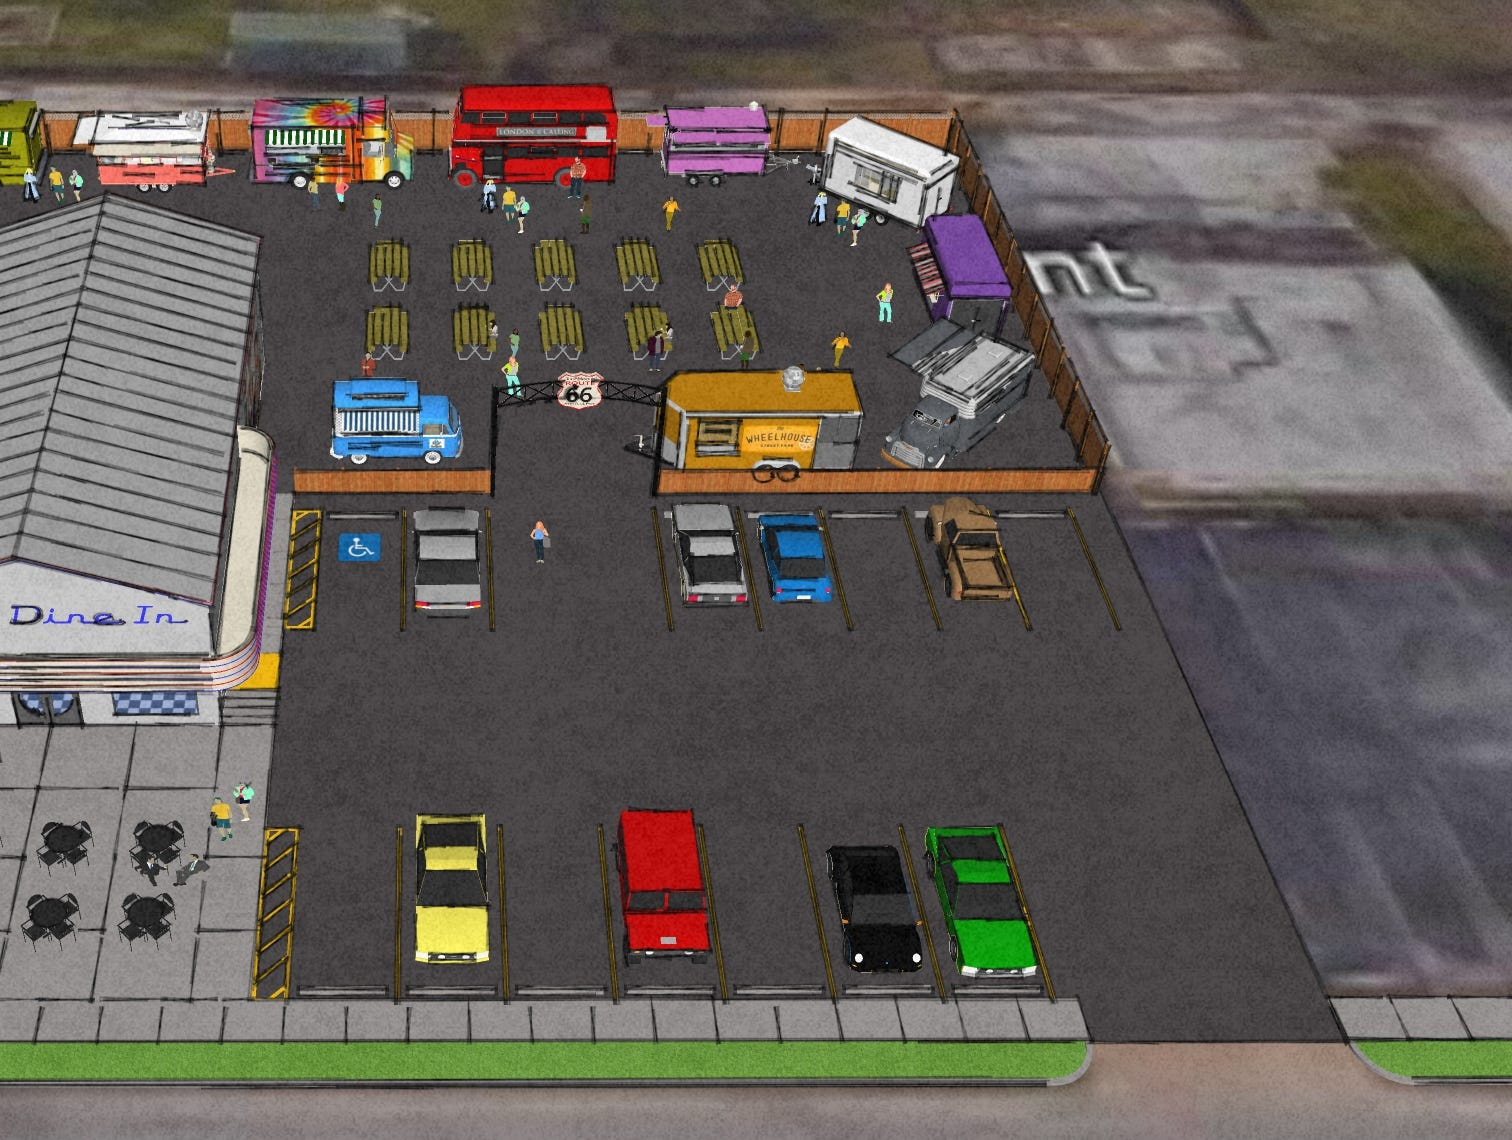 Digital renderings for the Birthplace of Route 66 Food Truck Park & Diner on 1530 E. St. Louis St.